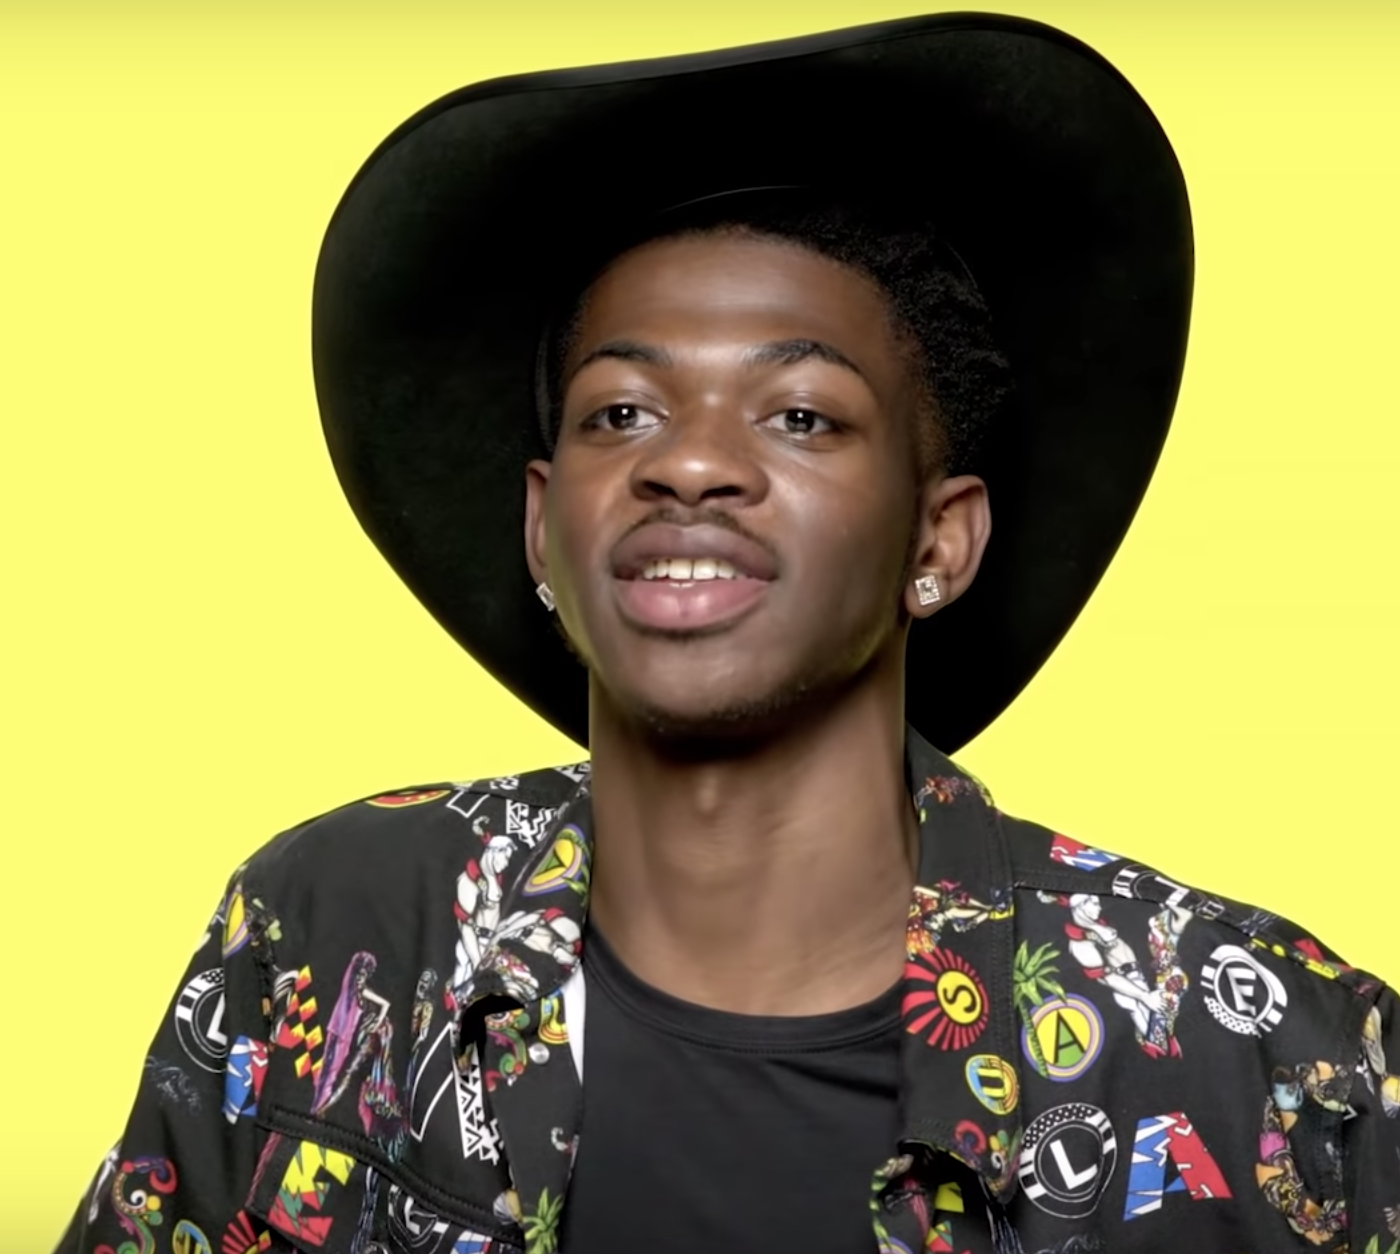 Lil Nas X speaking at his interview at Genius.